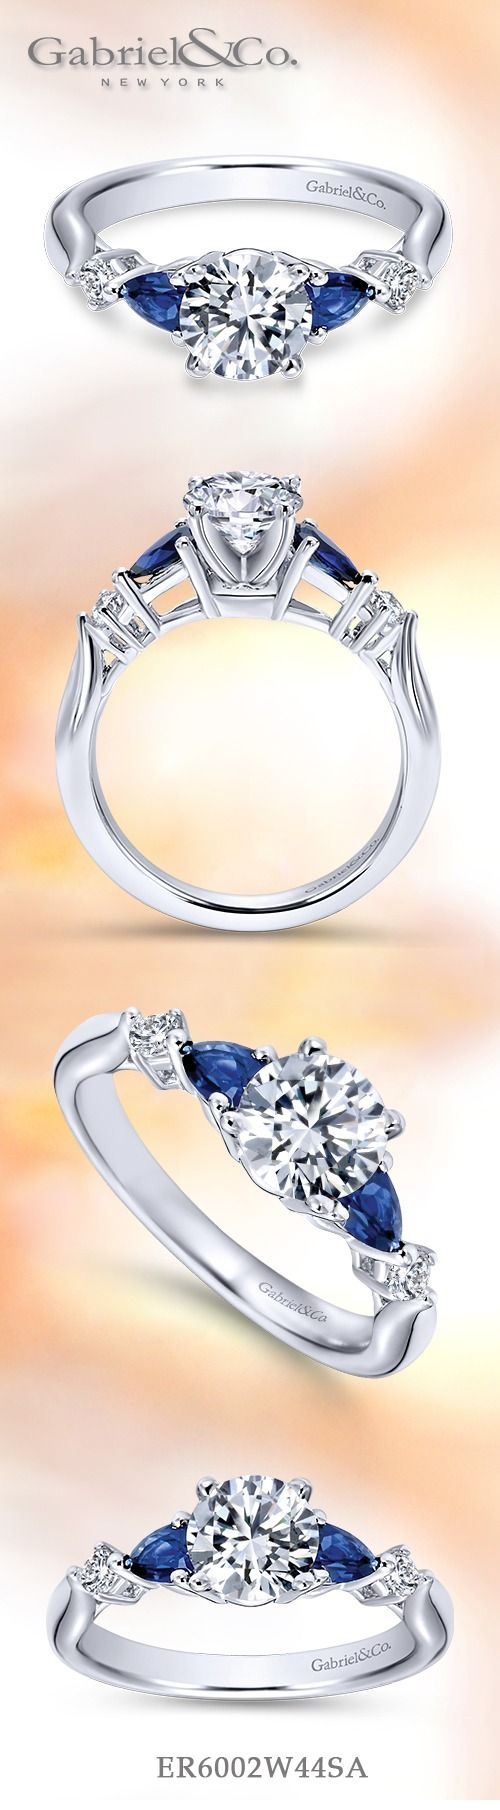 Gabriel & Co.-Voted #1 Most Preferred Fine Jewelry and Bridal Brand. Meet Carrie - Carrie 14k White Gold Round 3 Stones Engagement Ring with diamond and sapphire side stones to highlight your flawless center stone.